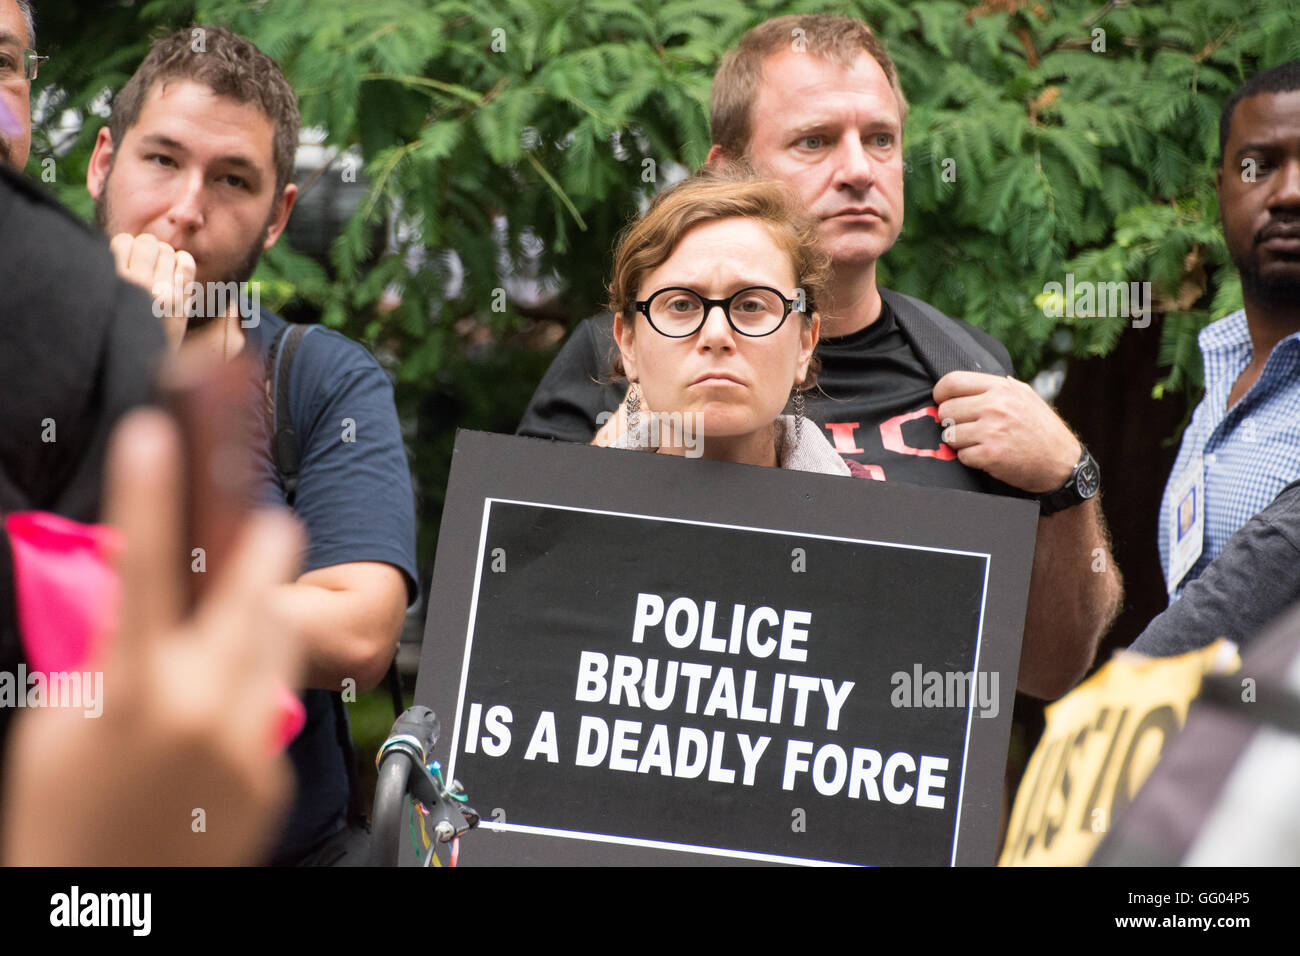 New York, USA. 1st August 2016. Black Lives Matter activists and allies occupied City Hall Park all day to protest - Stock Image